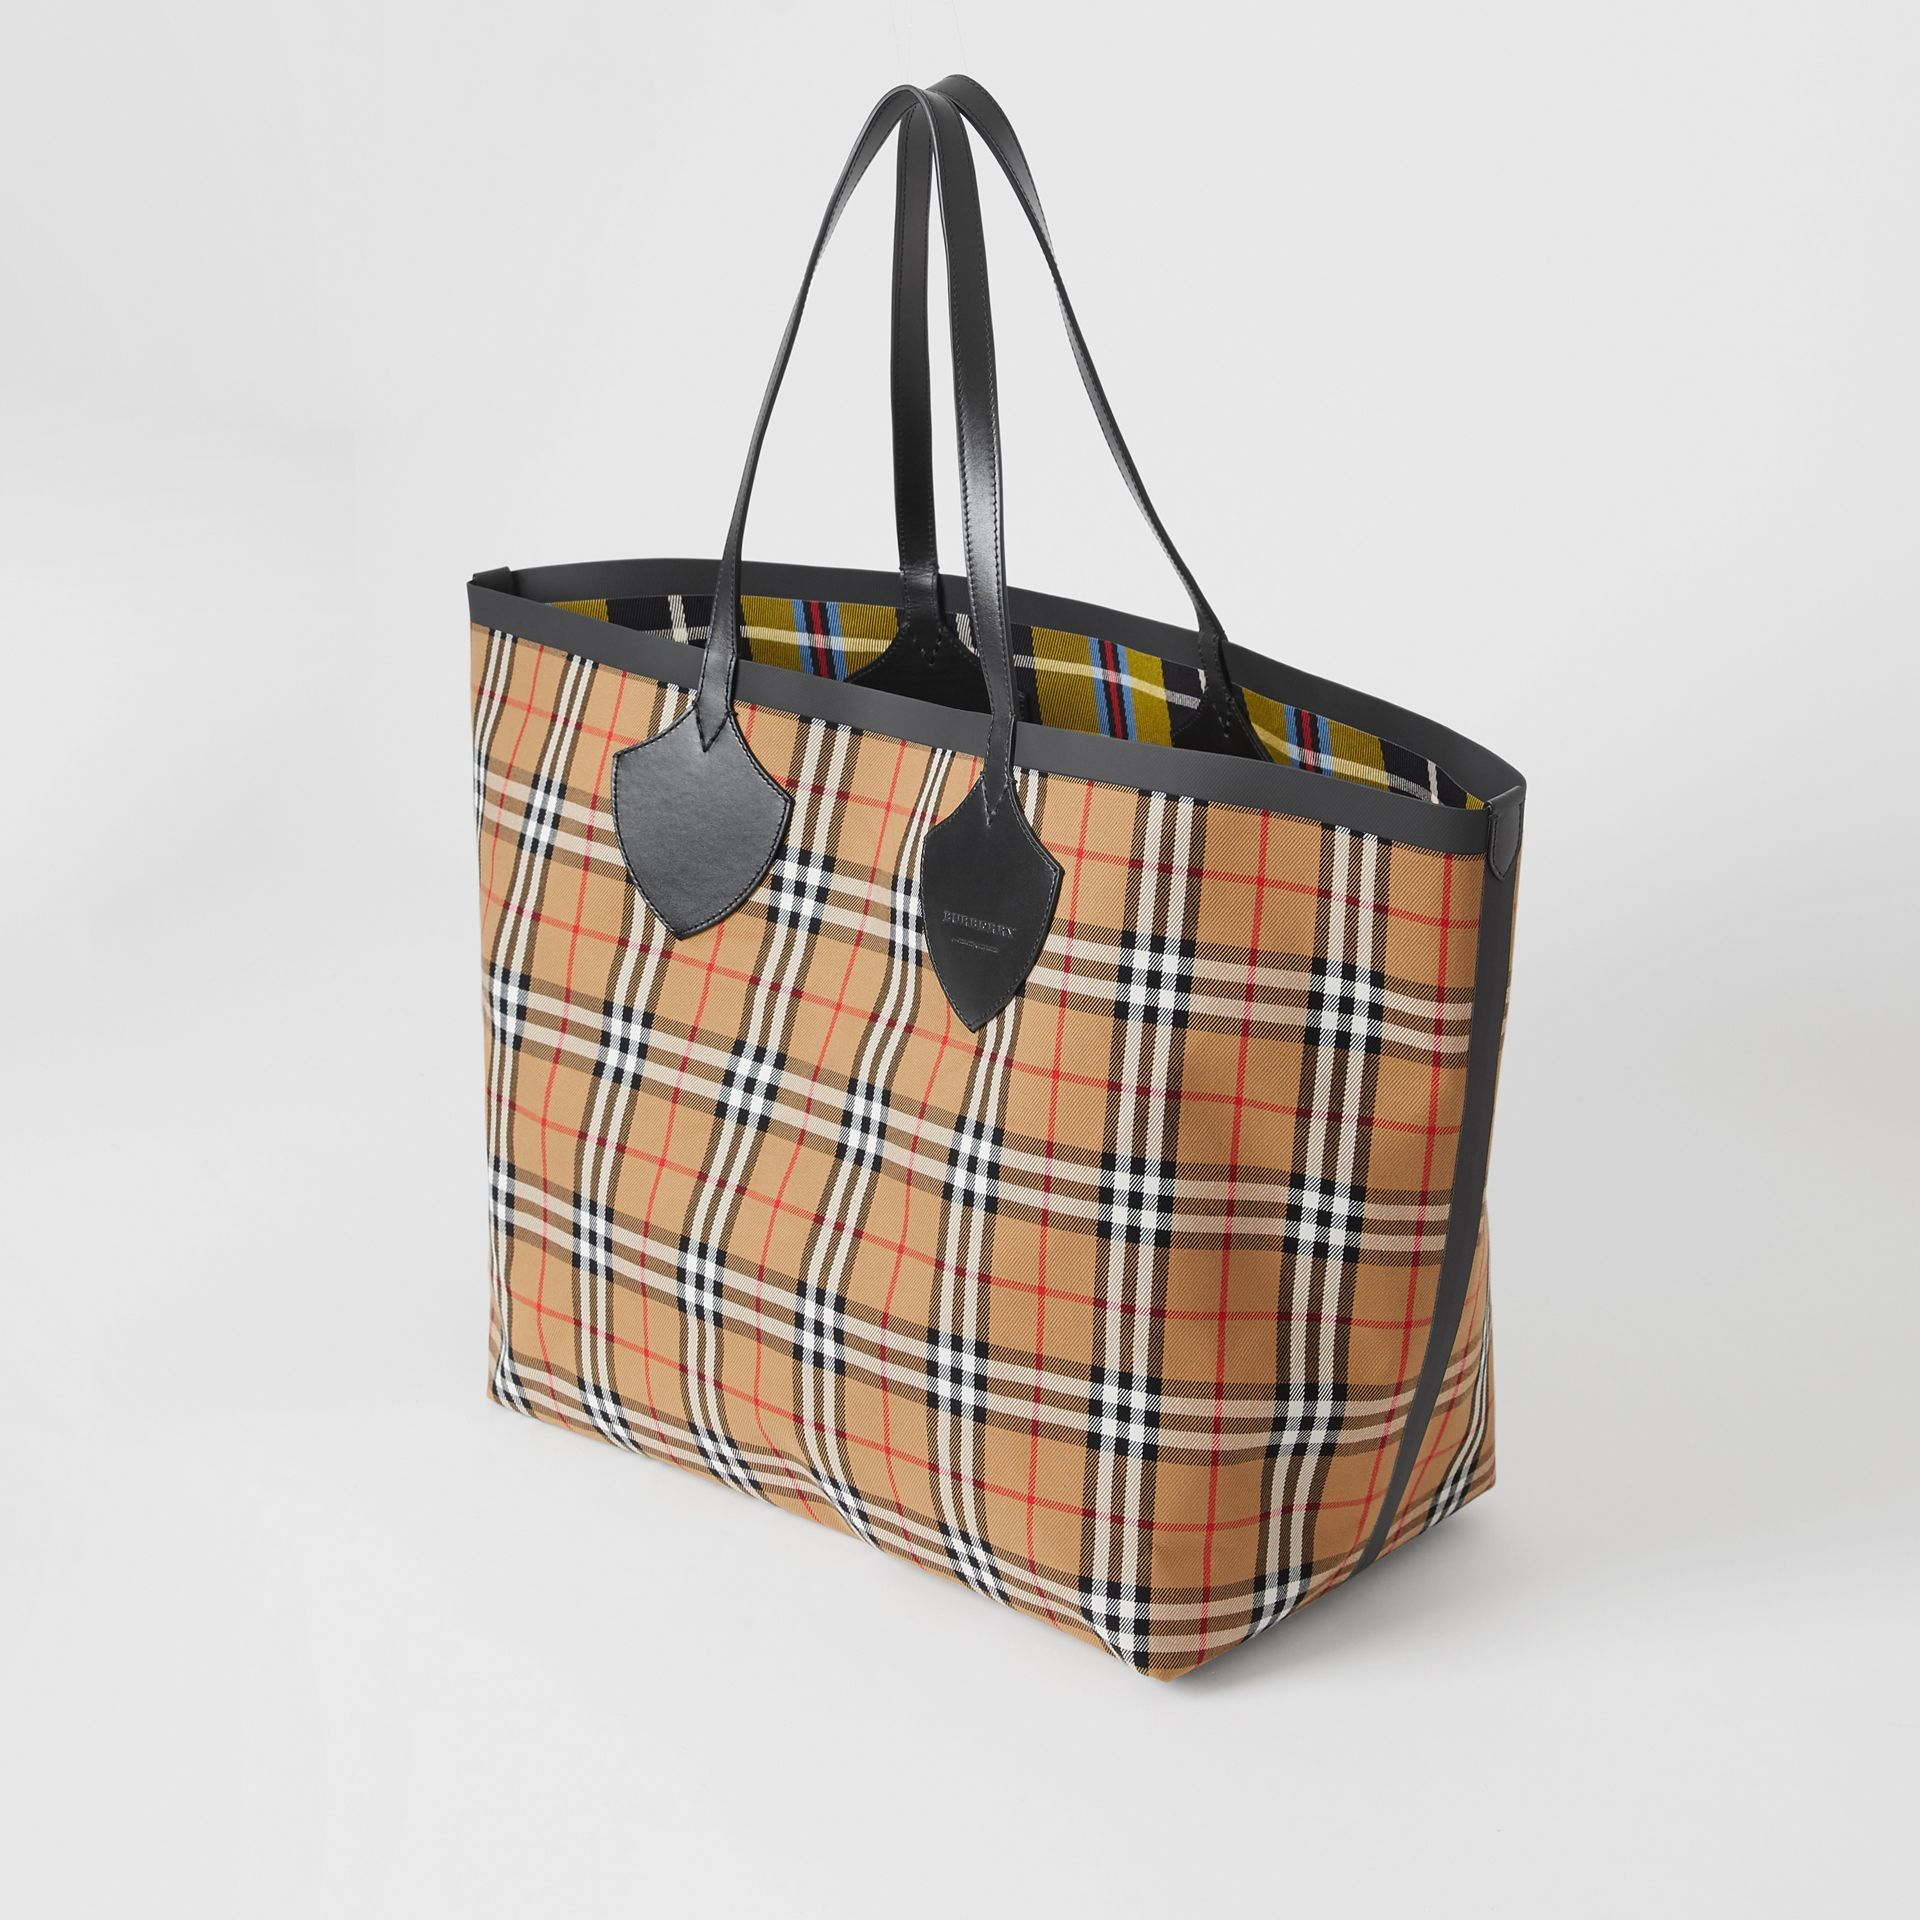 Sac tote The Giant réversible en coton à motif Vintage check (Jaune Antique) | Burberry - photo de la galerie 3